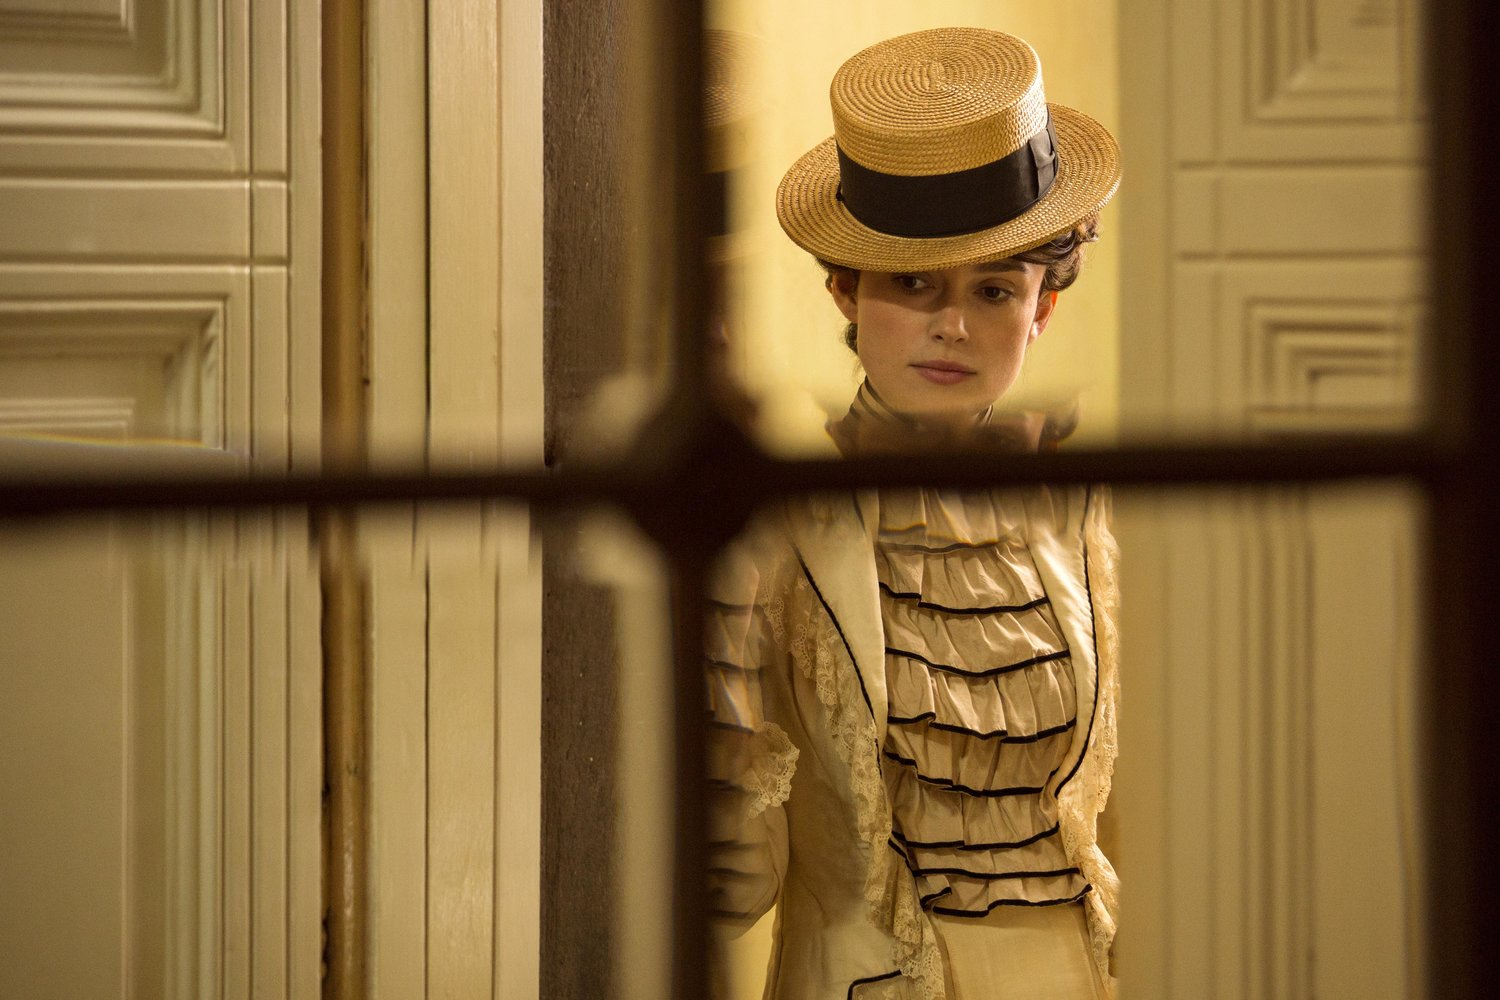 Colette (Keira Knightley) shows some early 20th century Parisian fashion sense.